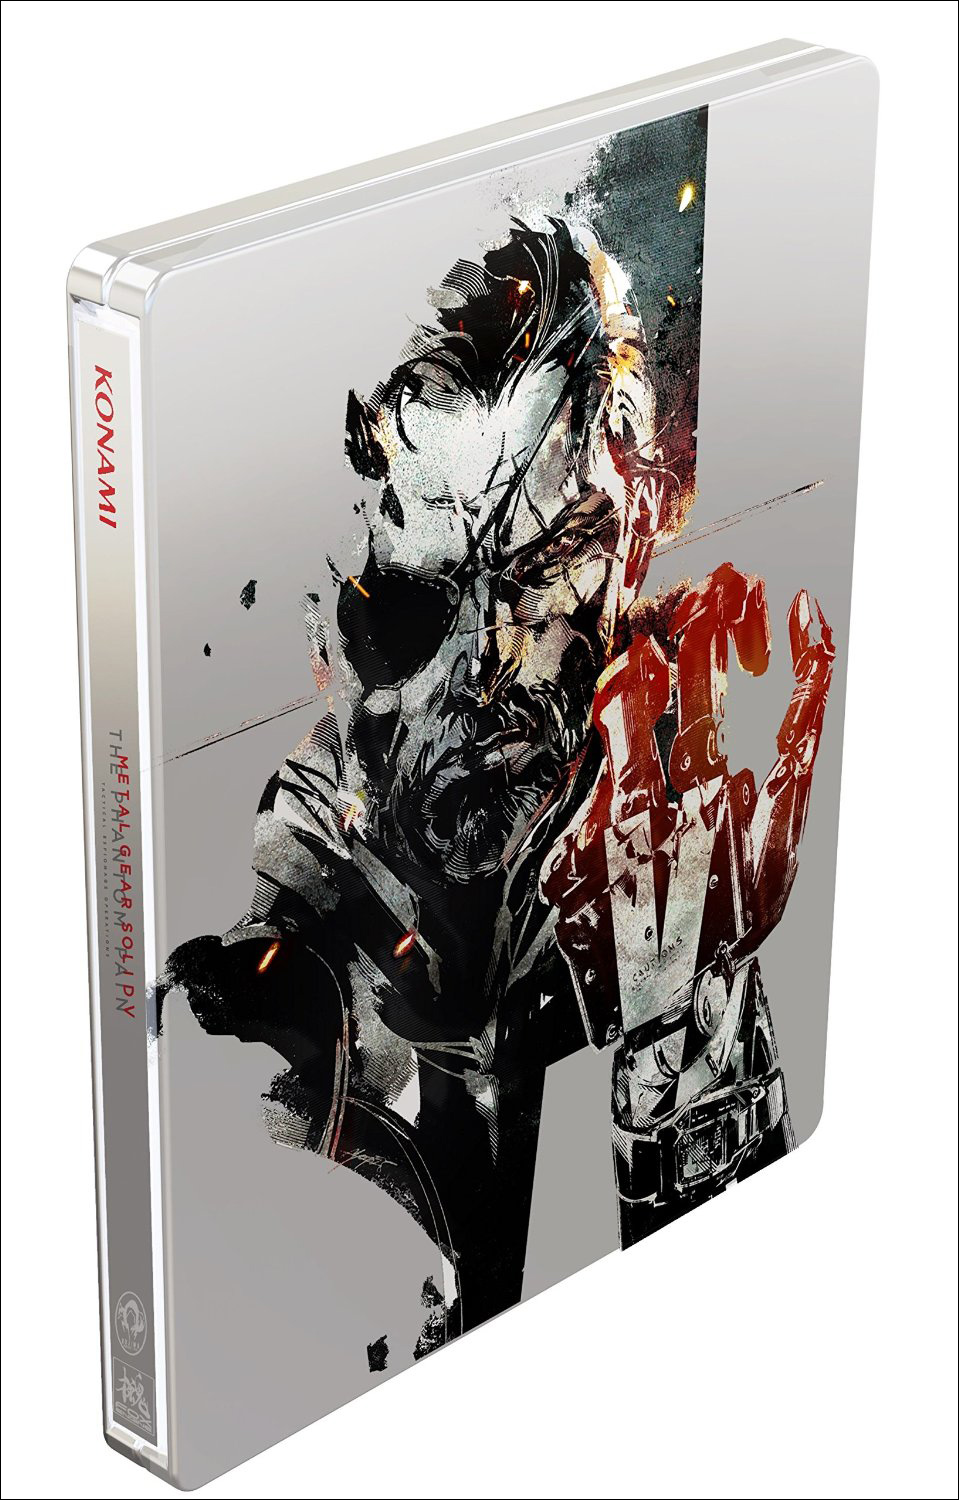 Metal-Gear-Solid-V-The-Phantom-Pain-Steelbook-Shinkawa